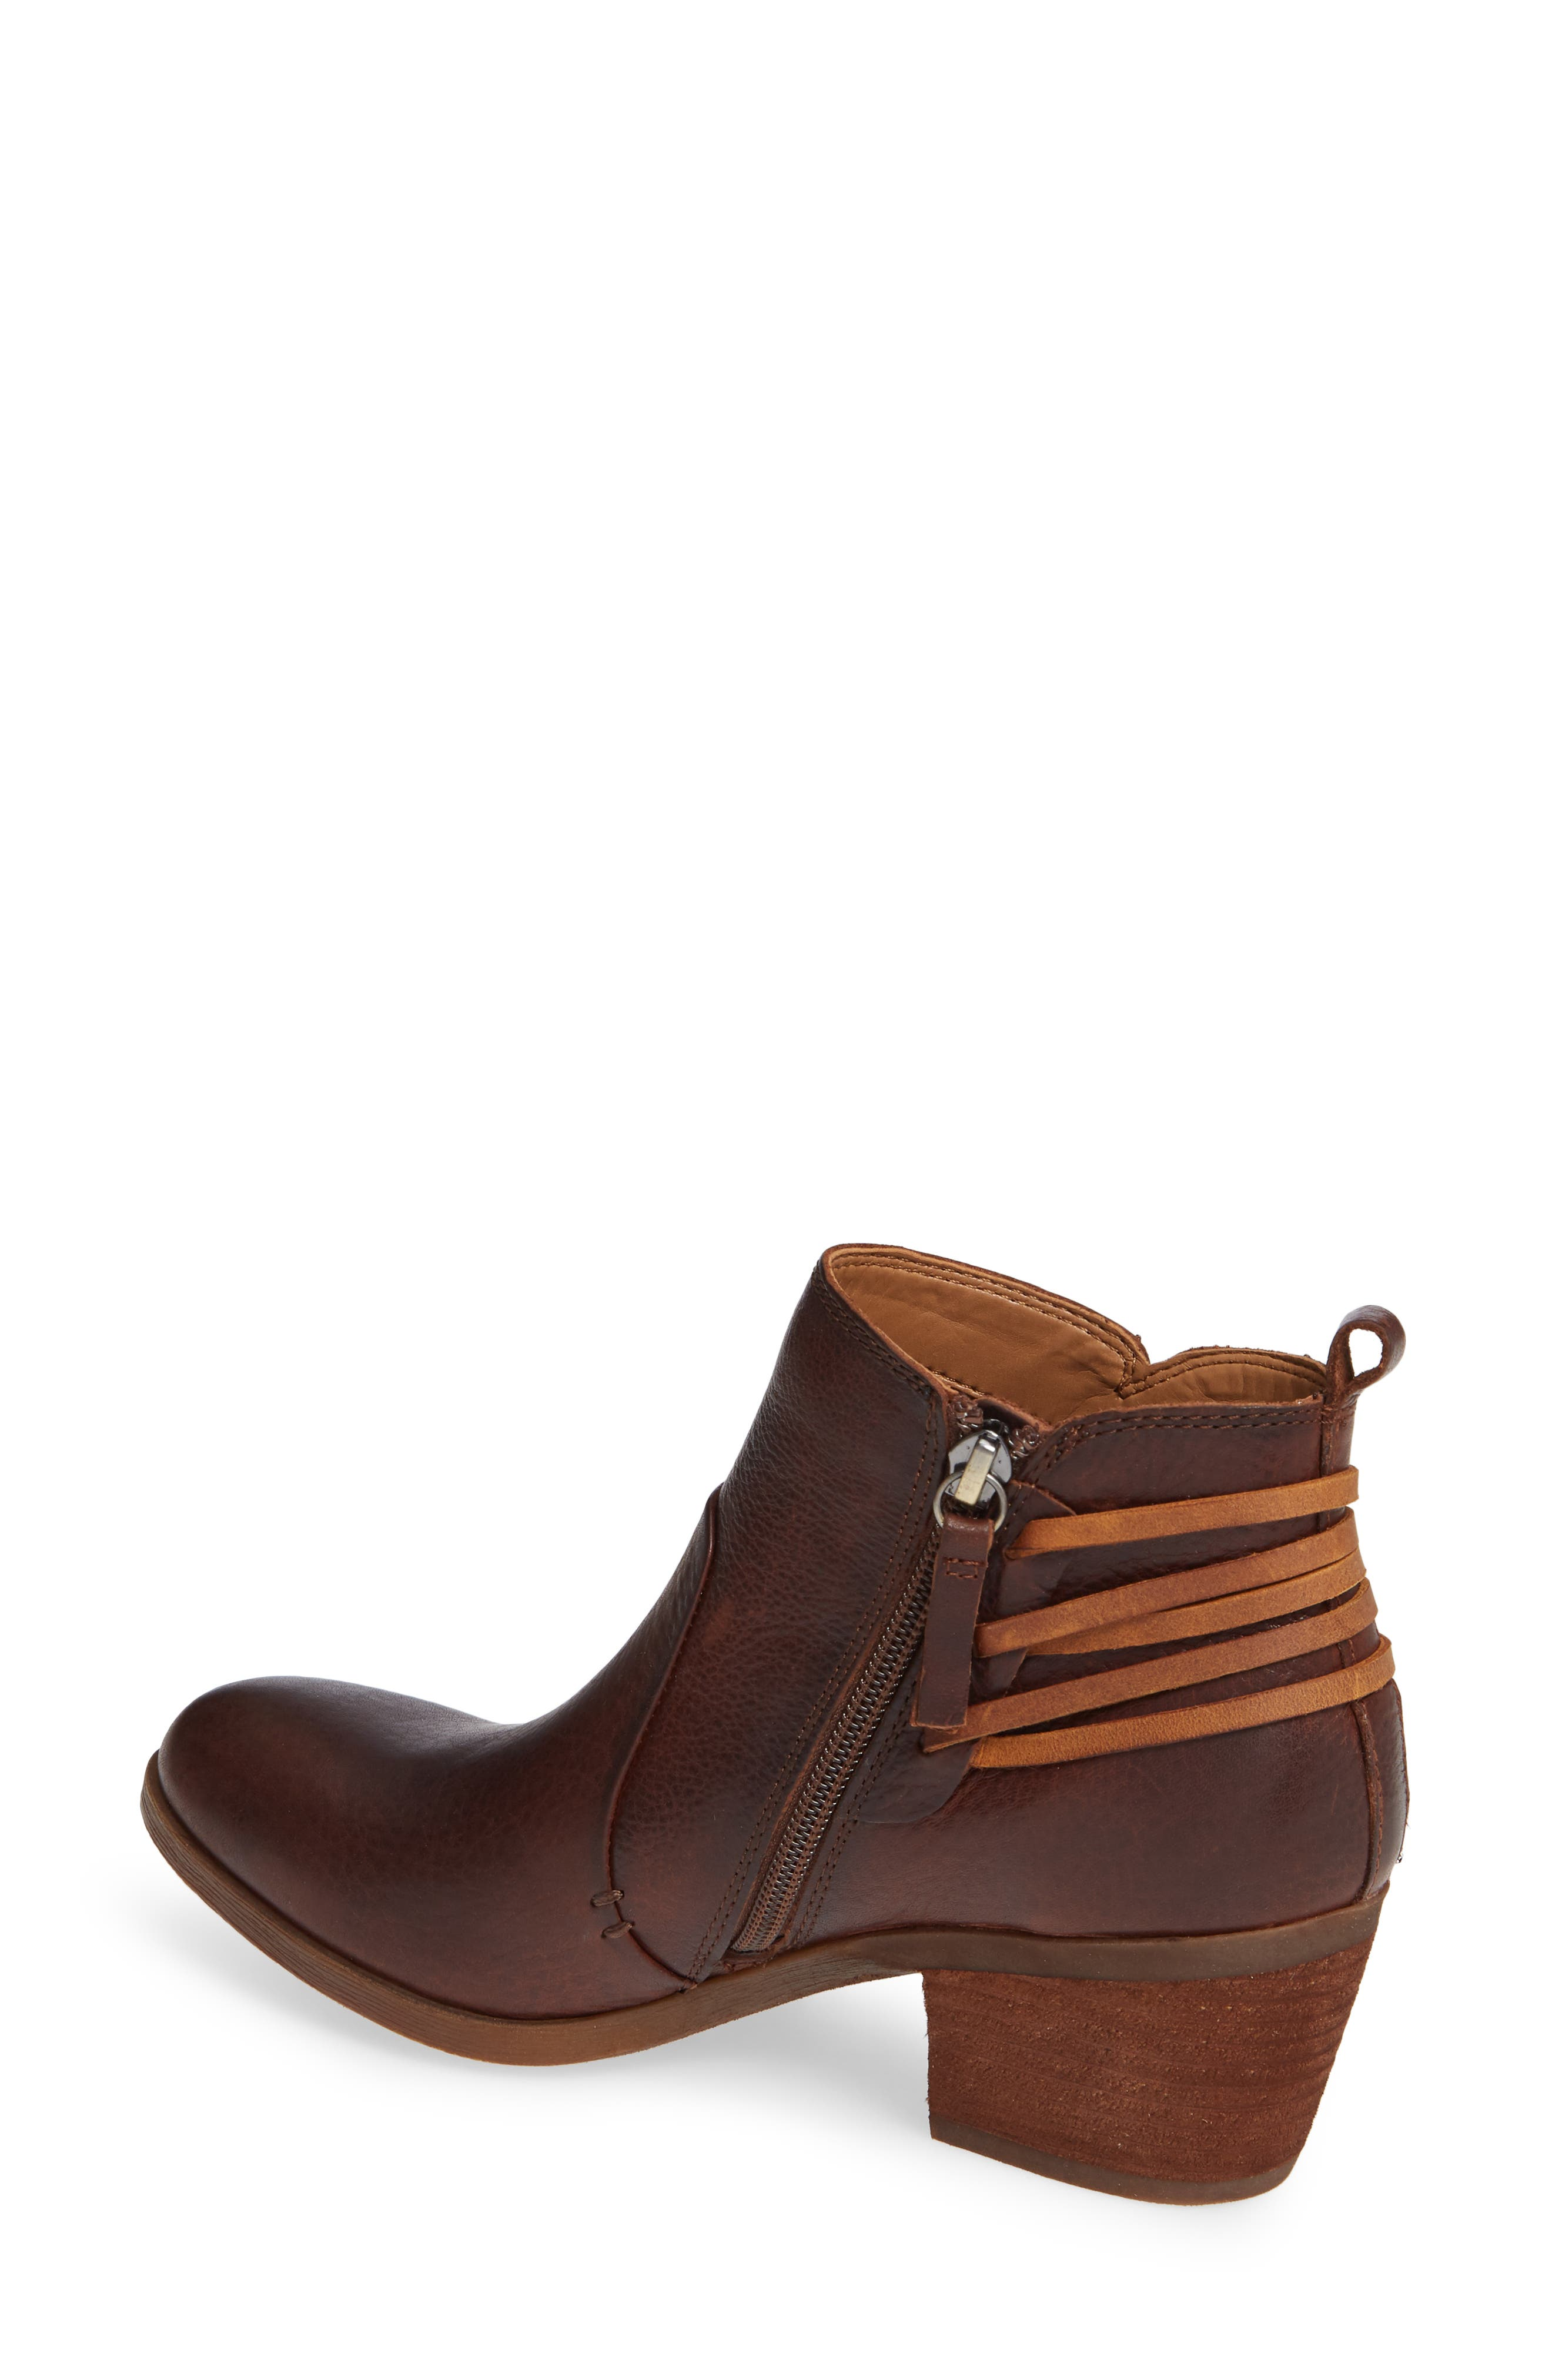 Kinsley Bootie,                             Alternate thumbnail 2, color,                             WHISKEY/ ALMOND